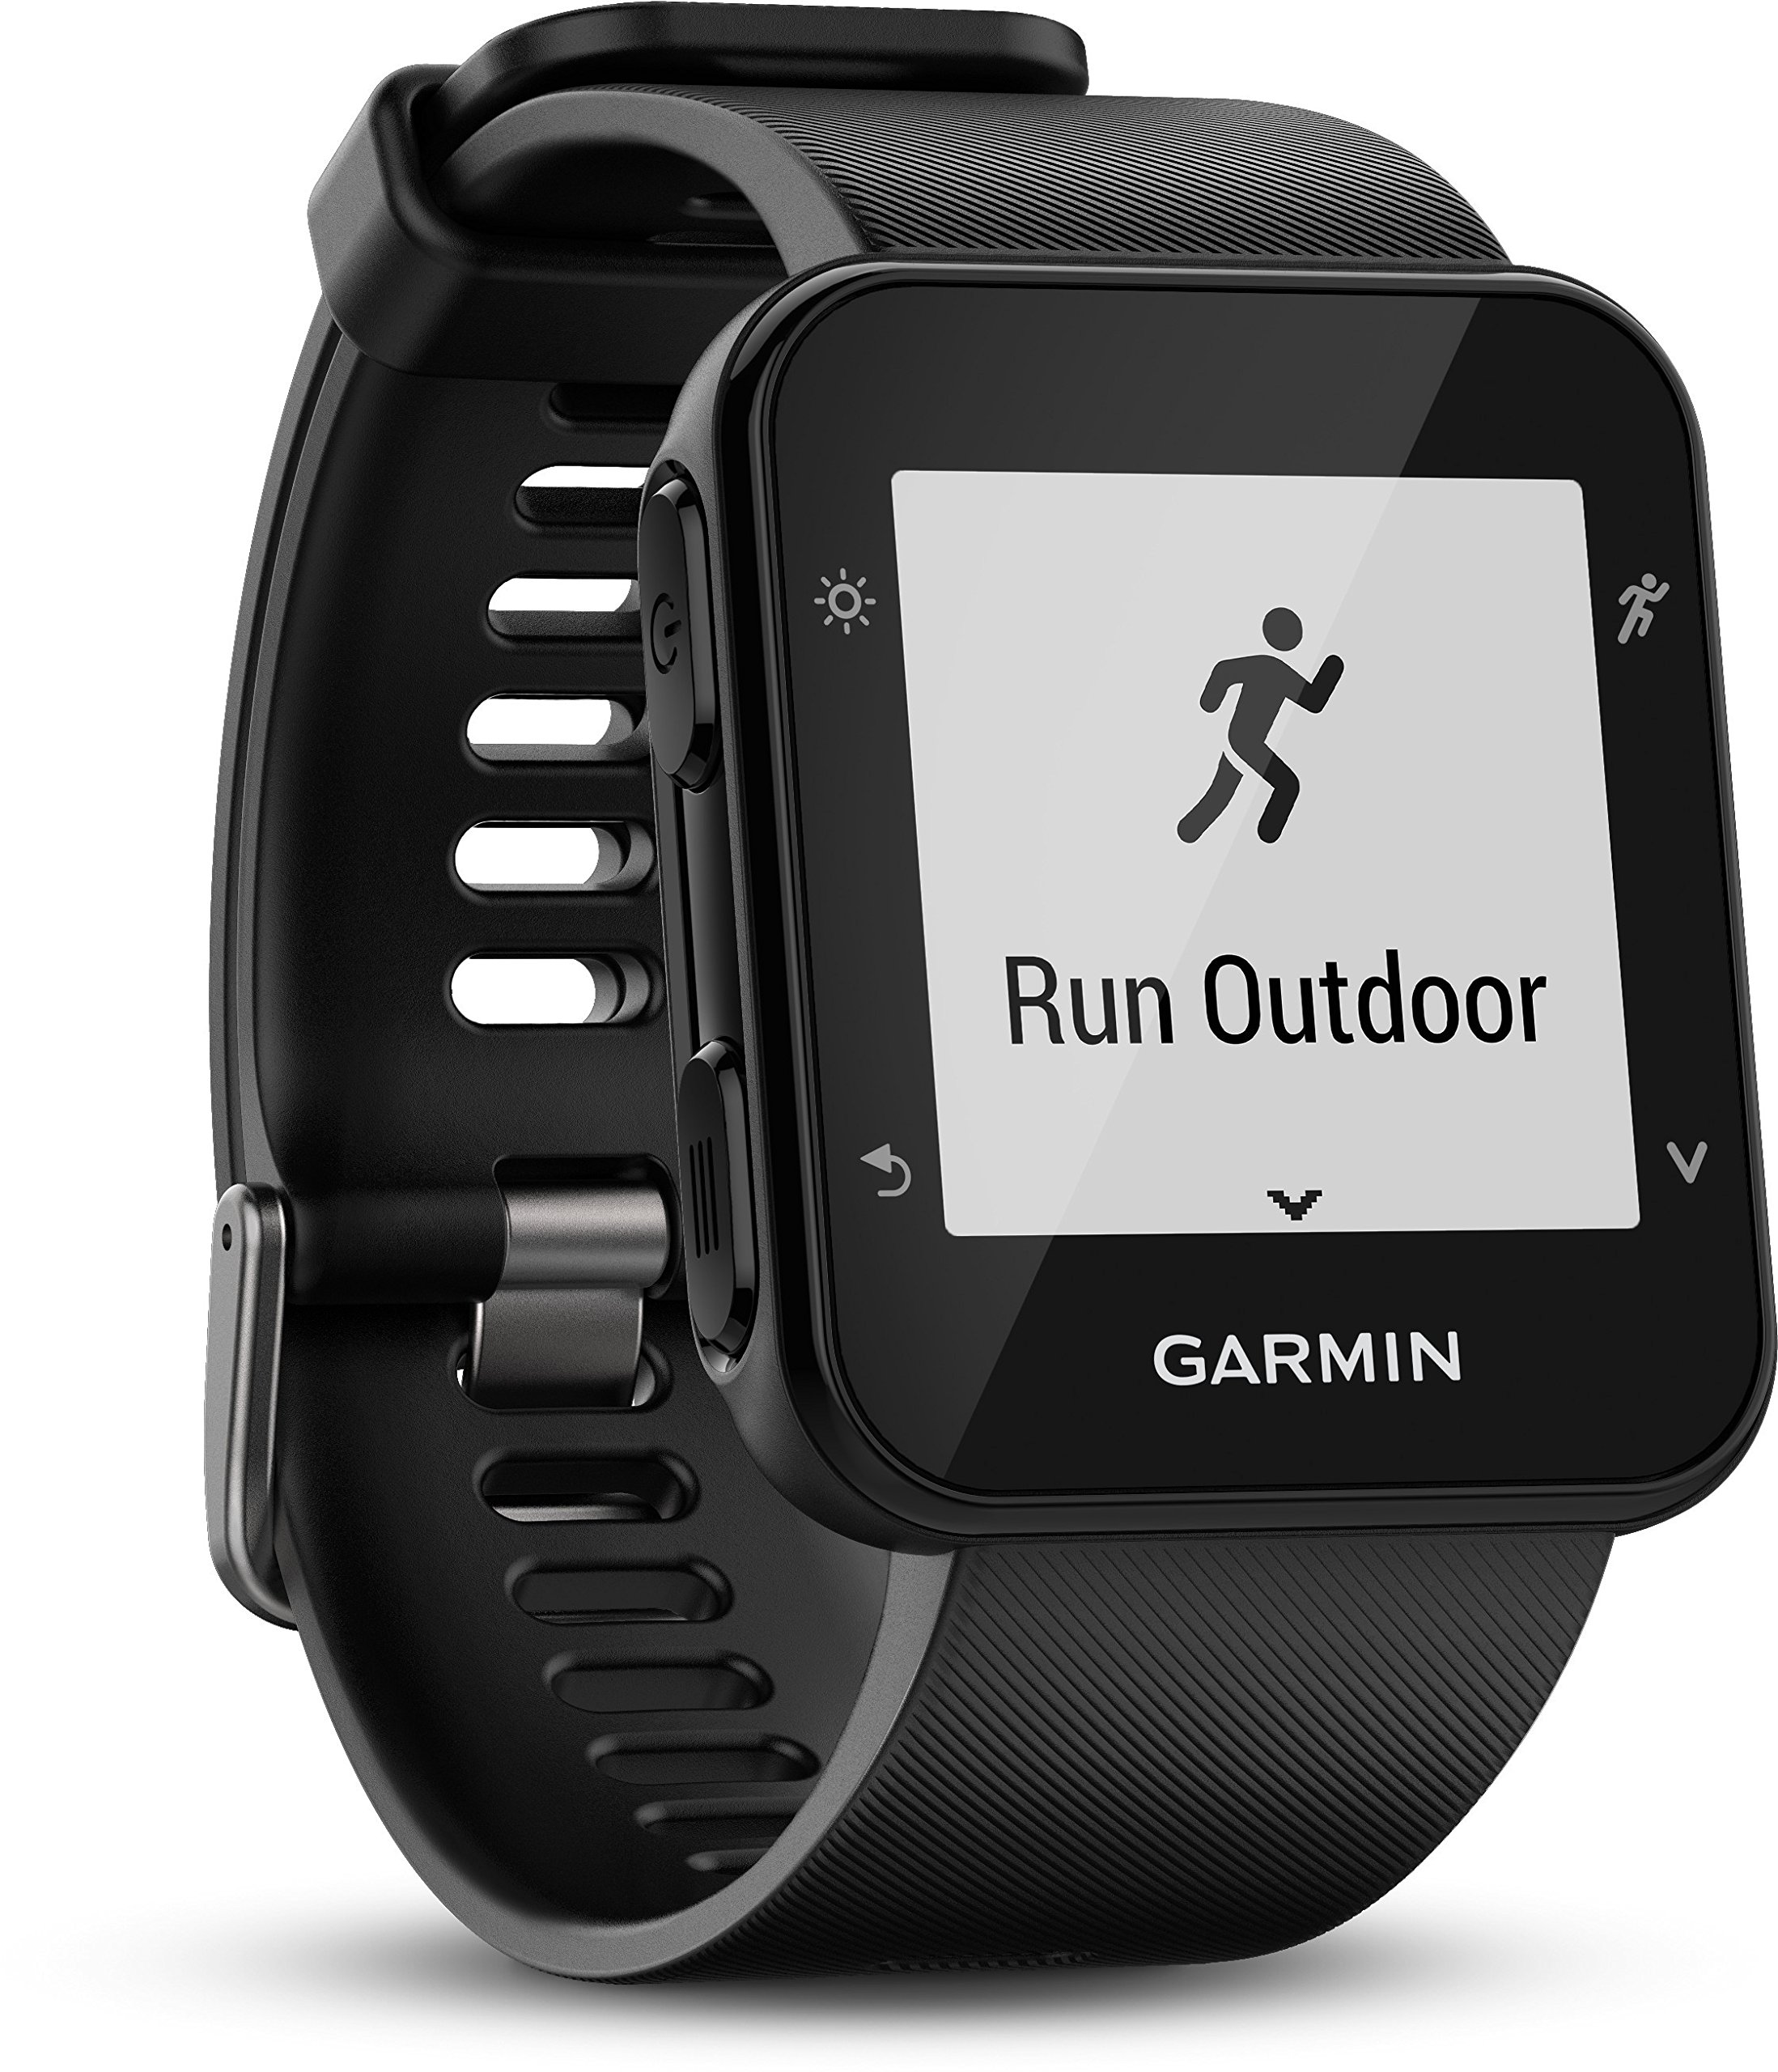 91xGa8AFZmL - Garmin Forerunner 35 GPS Running Watch with Wrist-Based Heart Rate and Workouts,010-01689-12